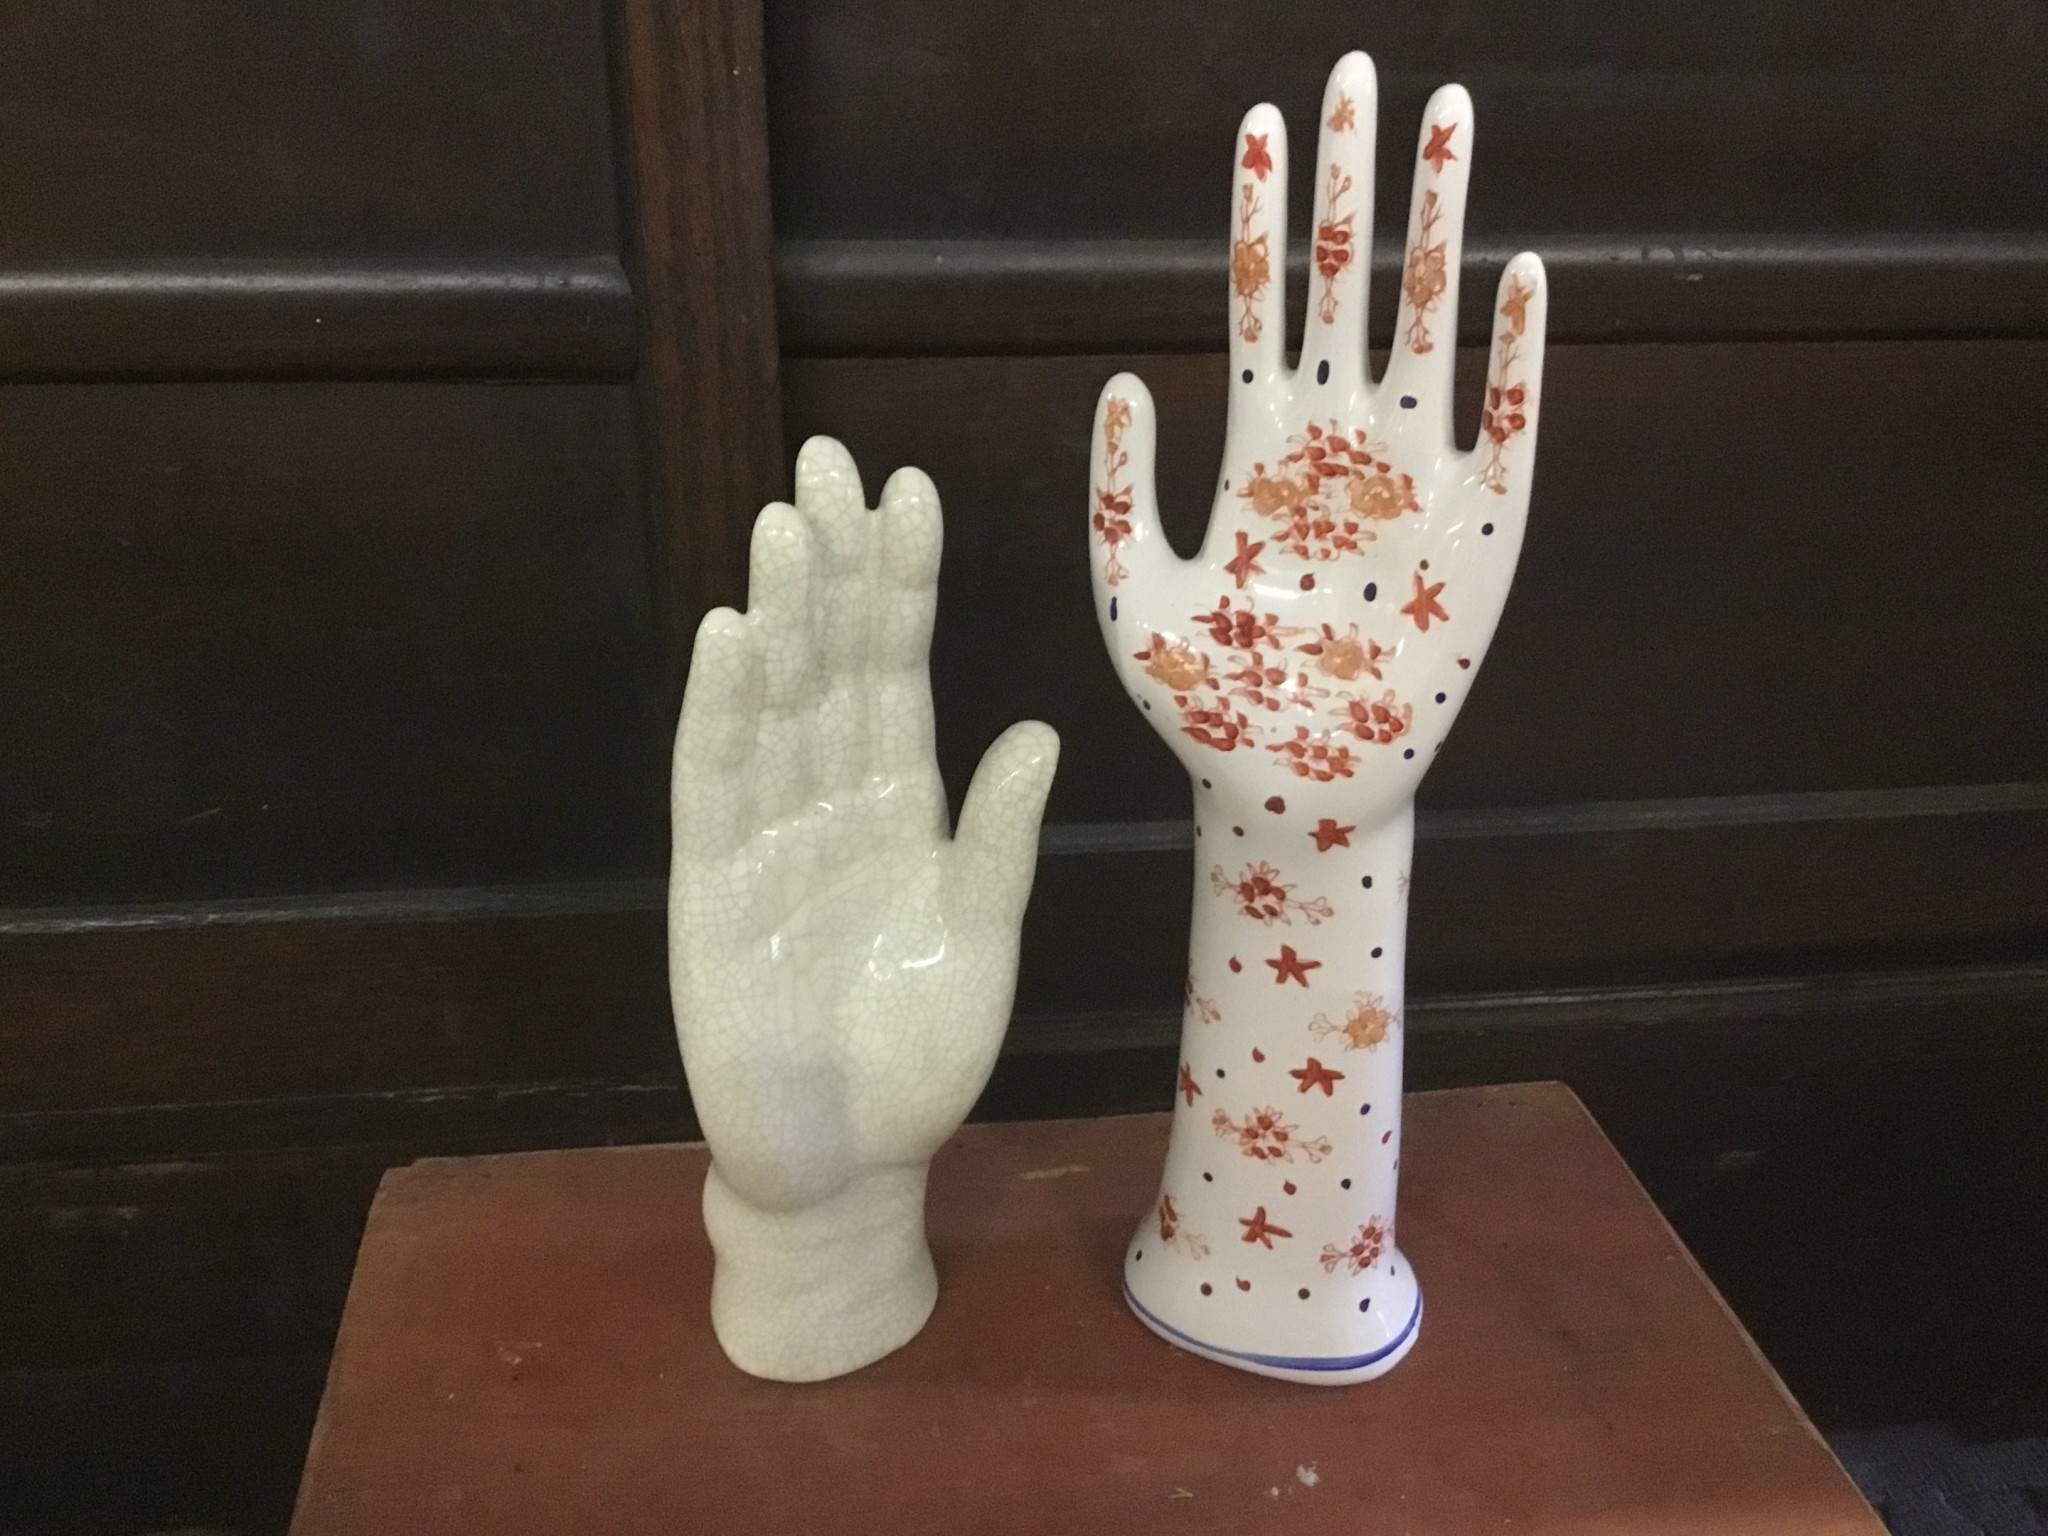 Large hands